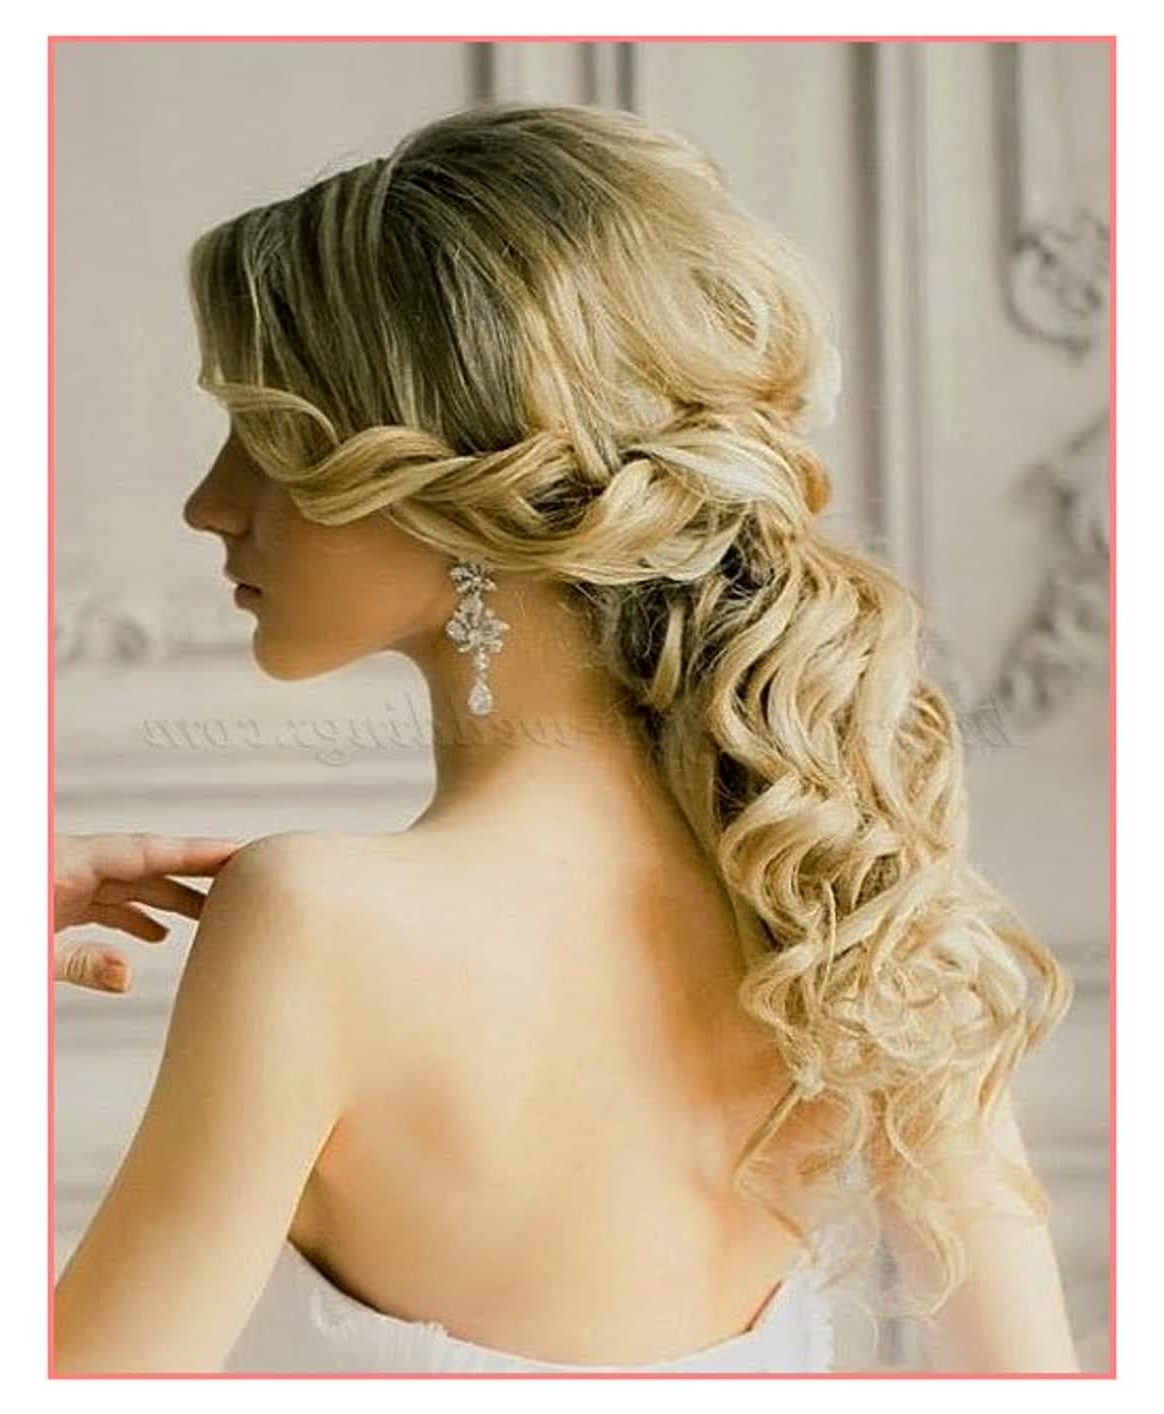 16 Gorgeous Medium Length Wedding Hairstyles: 15 Ideas Of Wedding Down Hairstyles For Medium Length Hair